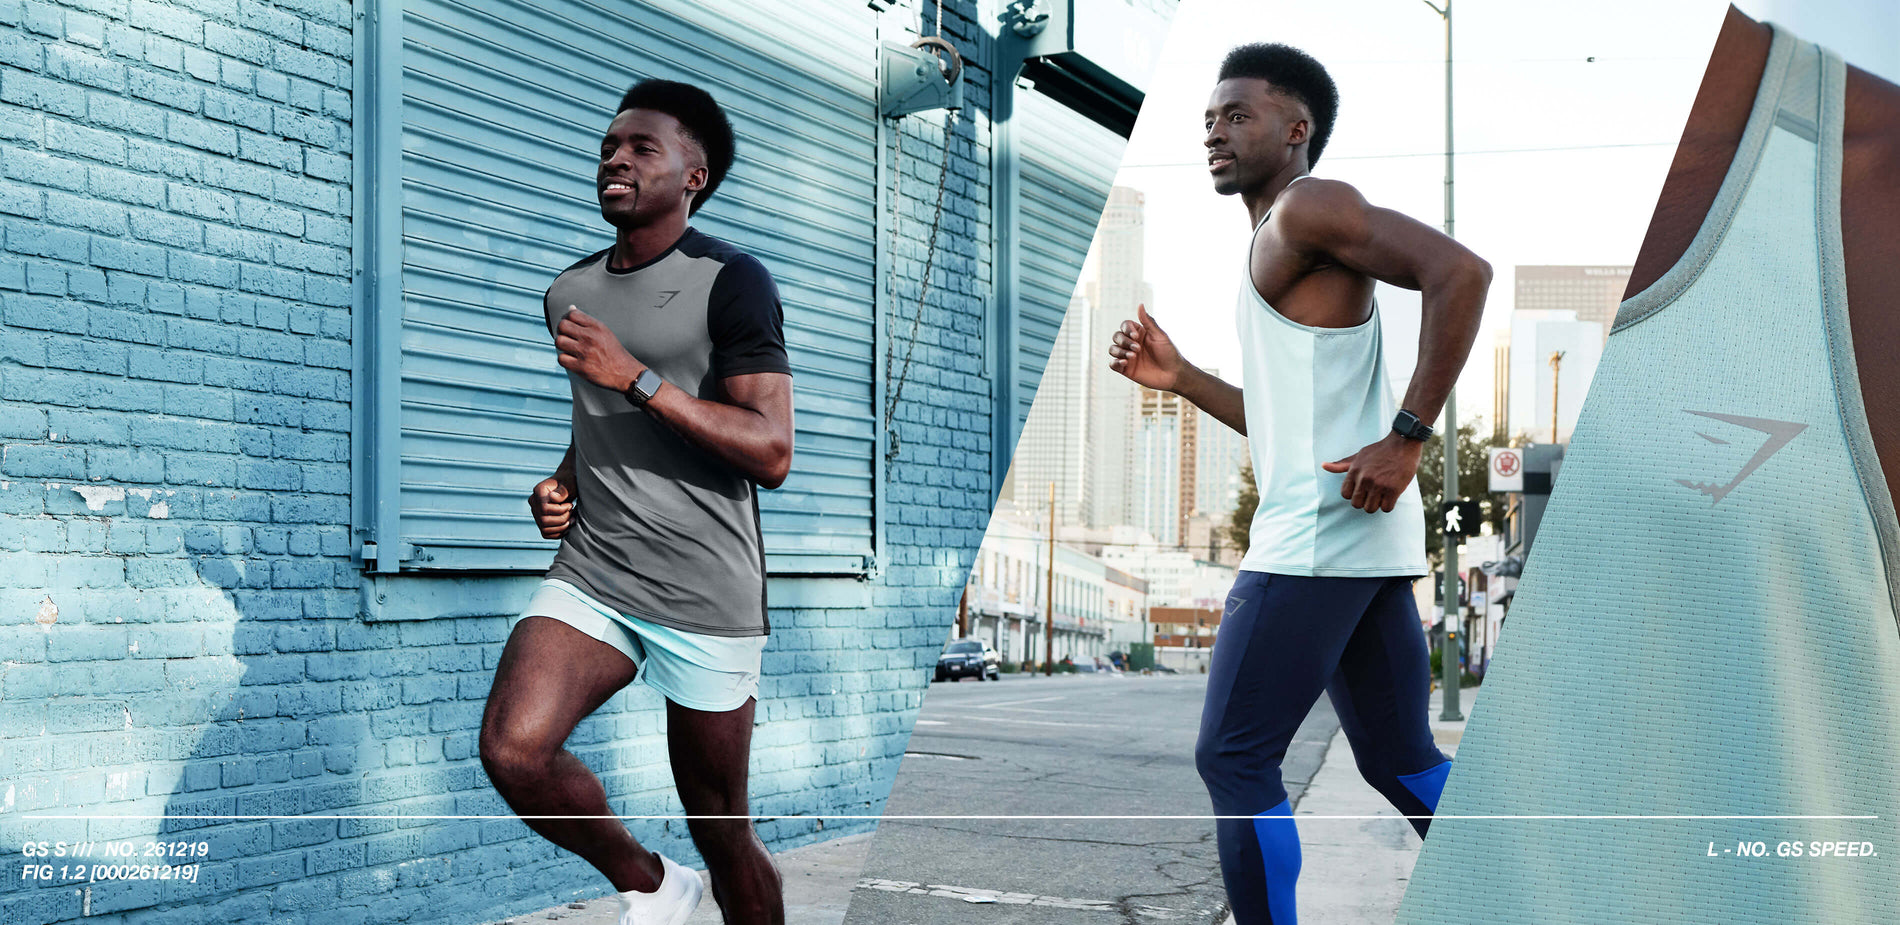 A collage of three images shows male Gymshark athlete Hellah Sidibe running down urban streets wearing the Speed collection.